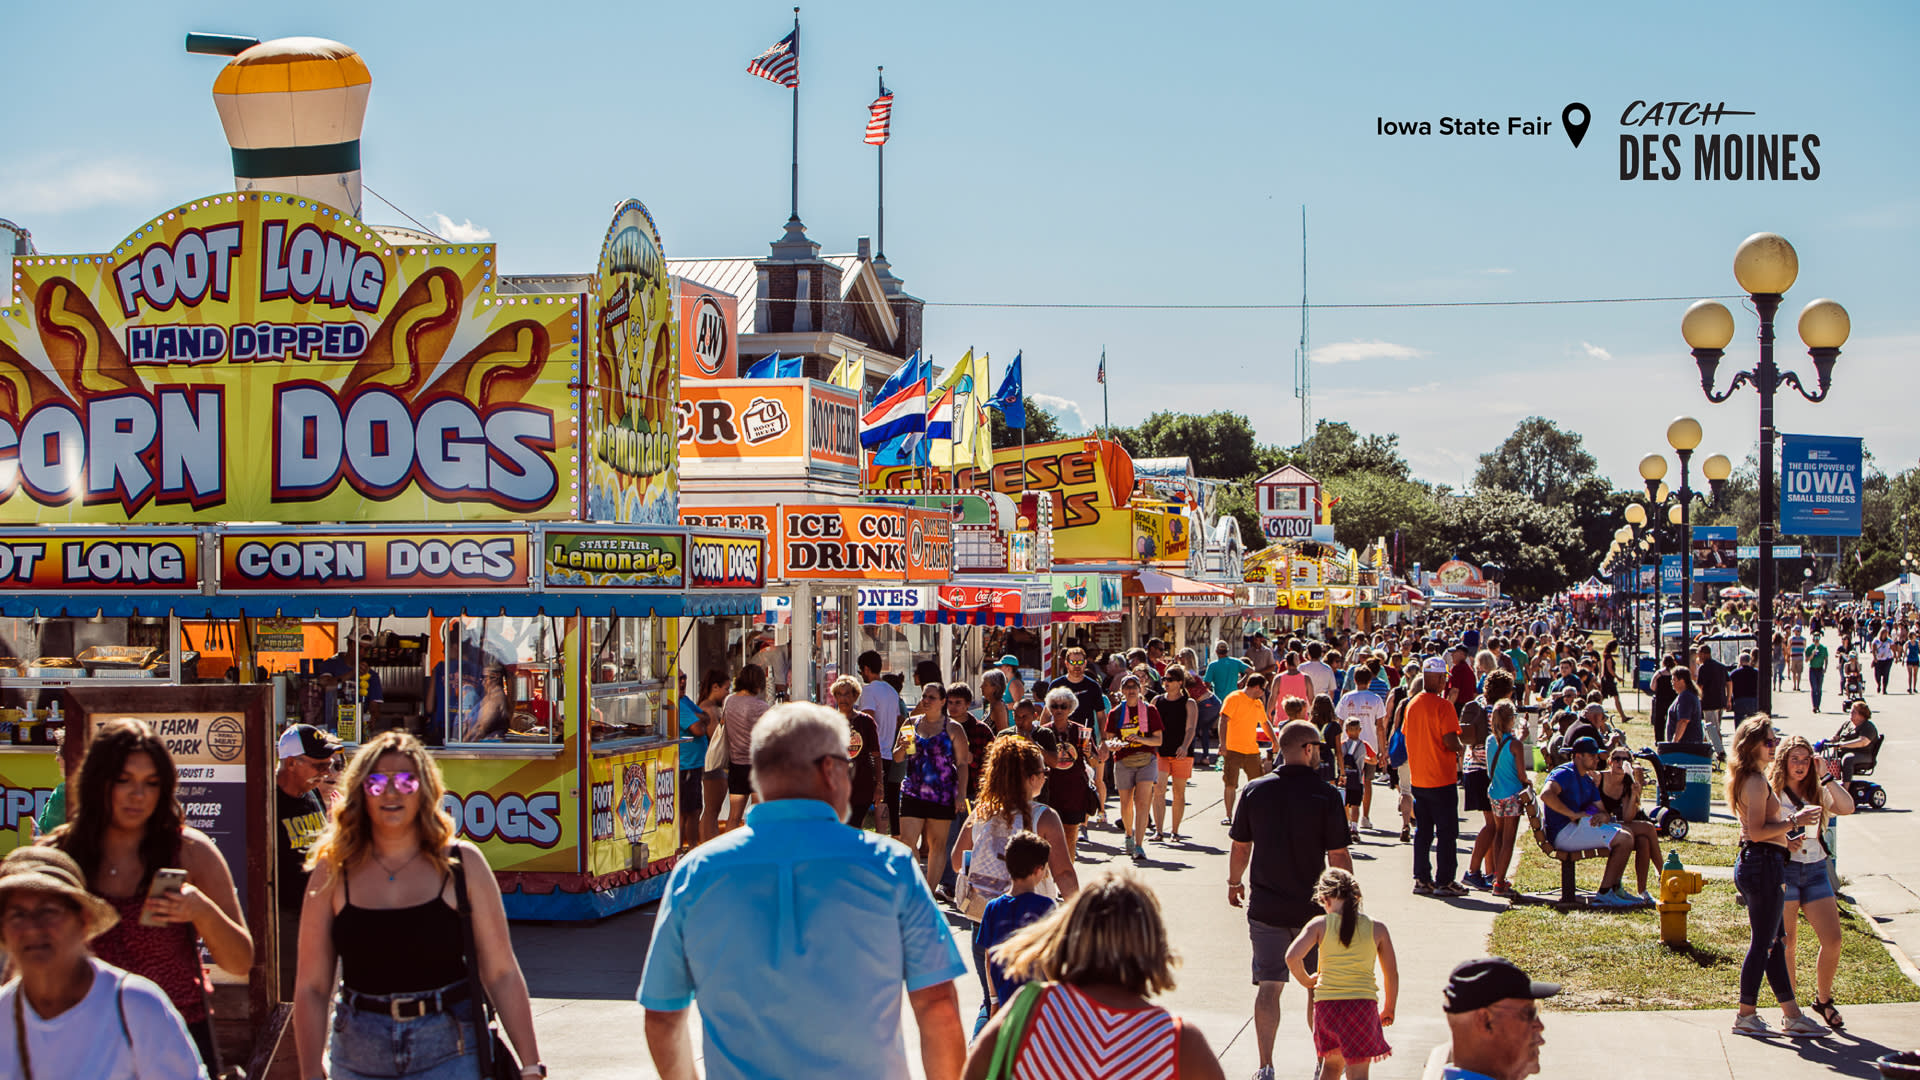 Iowa State Fair Food Stands Zoom Background